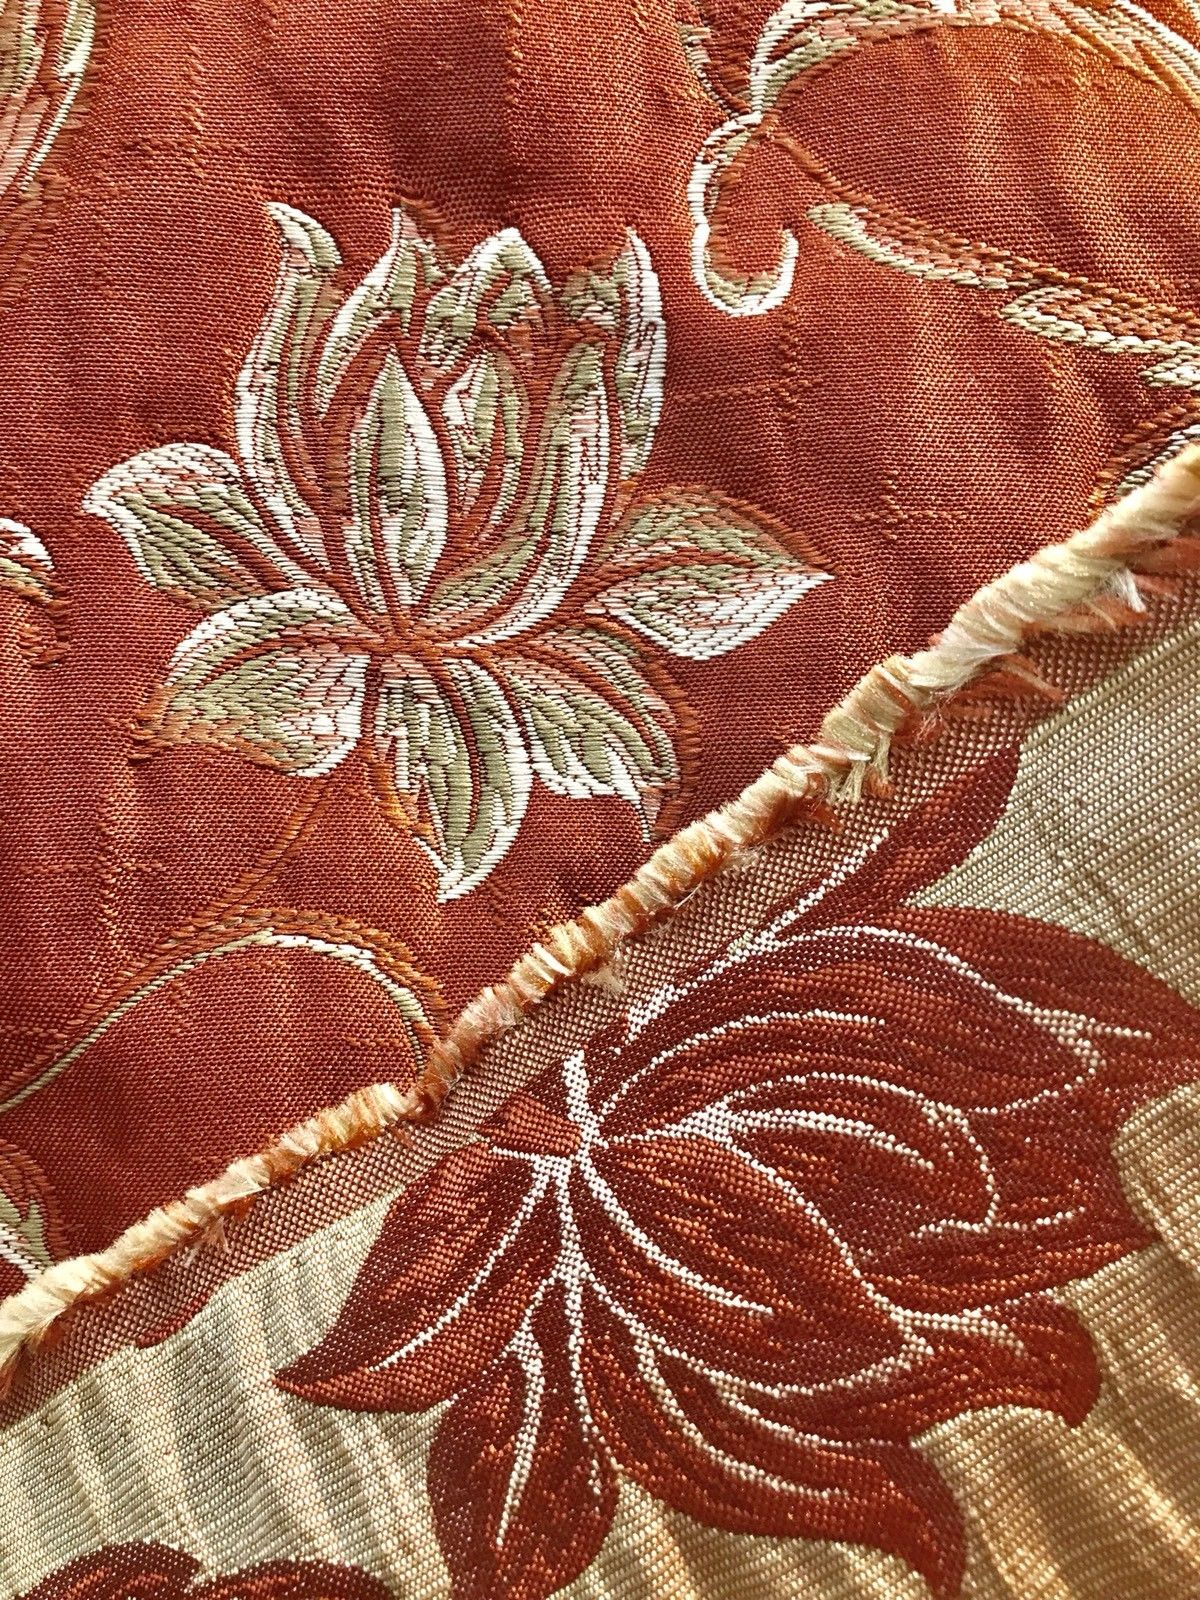 "SWATCH 4"" X 7"" - Quilted Brocade Floral Upholstery Fabric- Rust Brick Red - Fancy Styles Fabric Boutique"